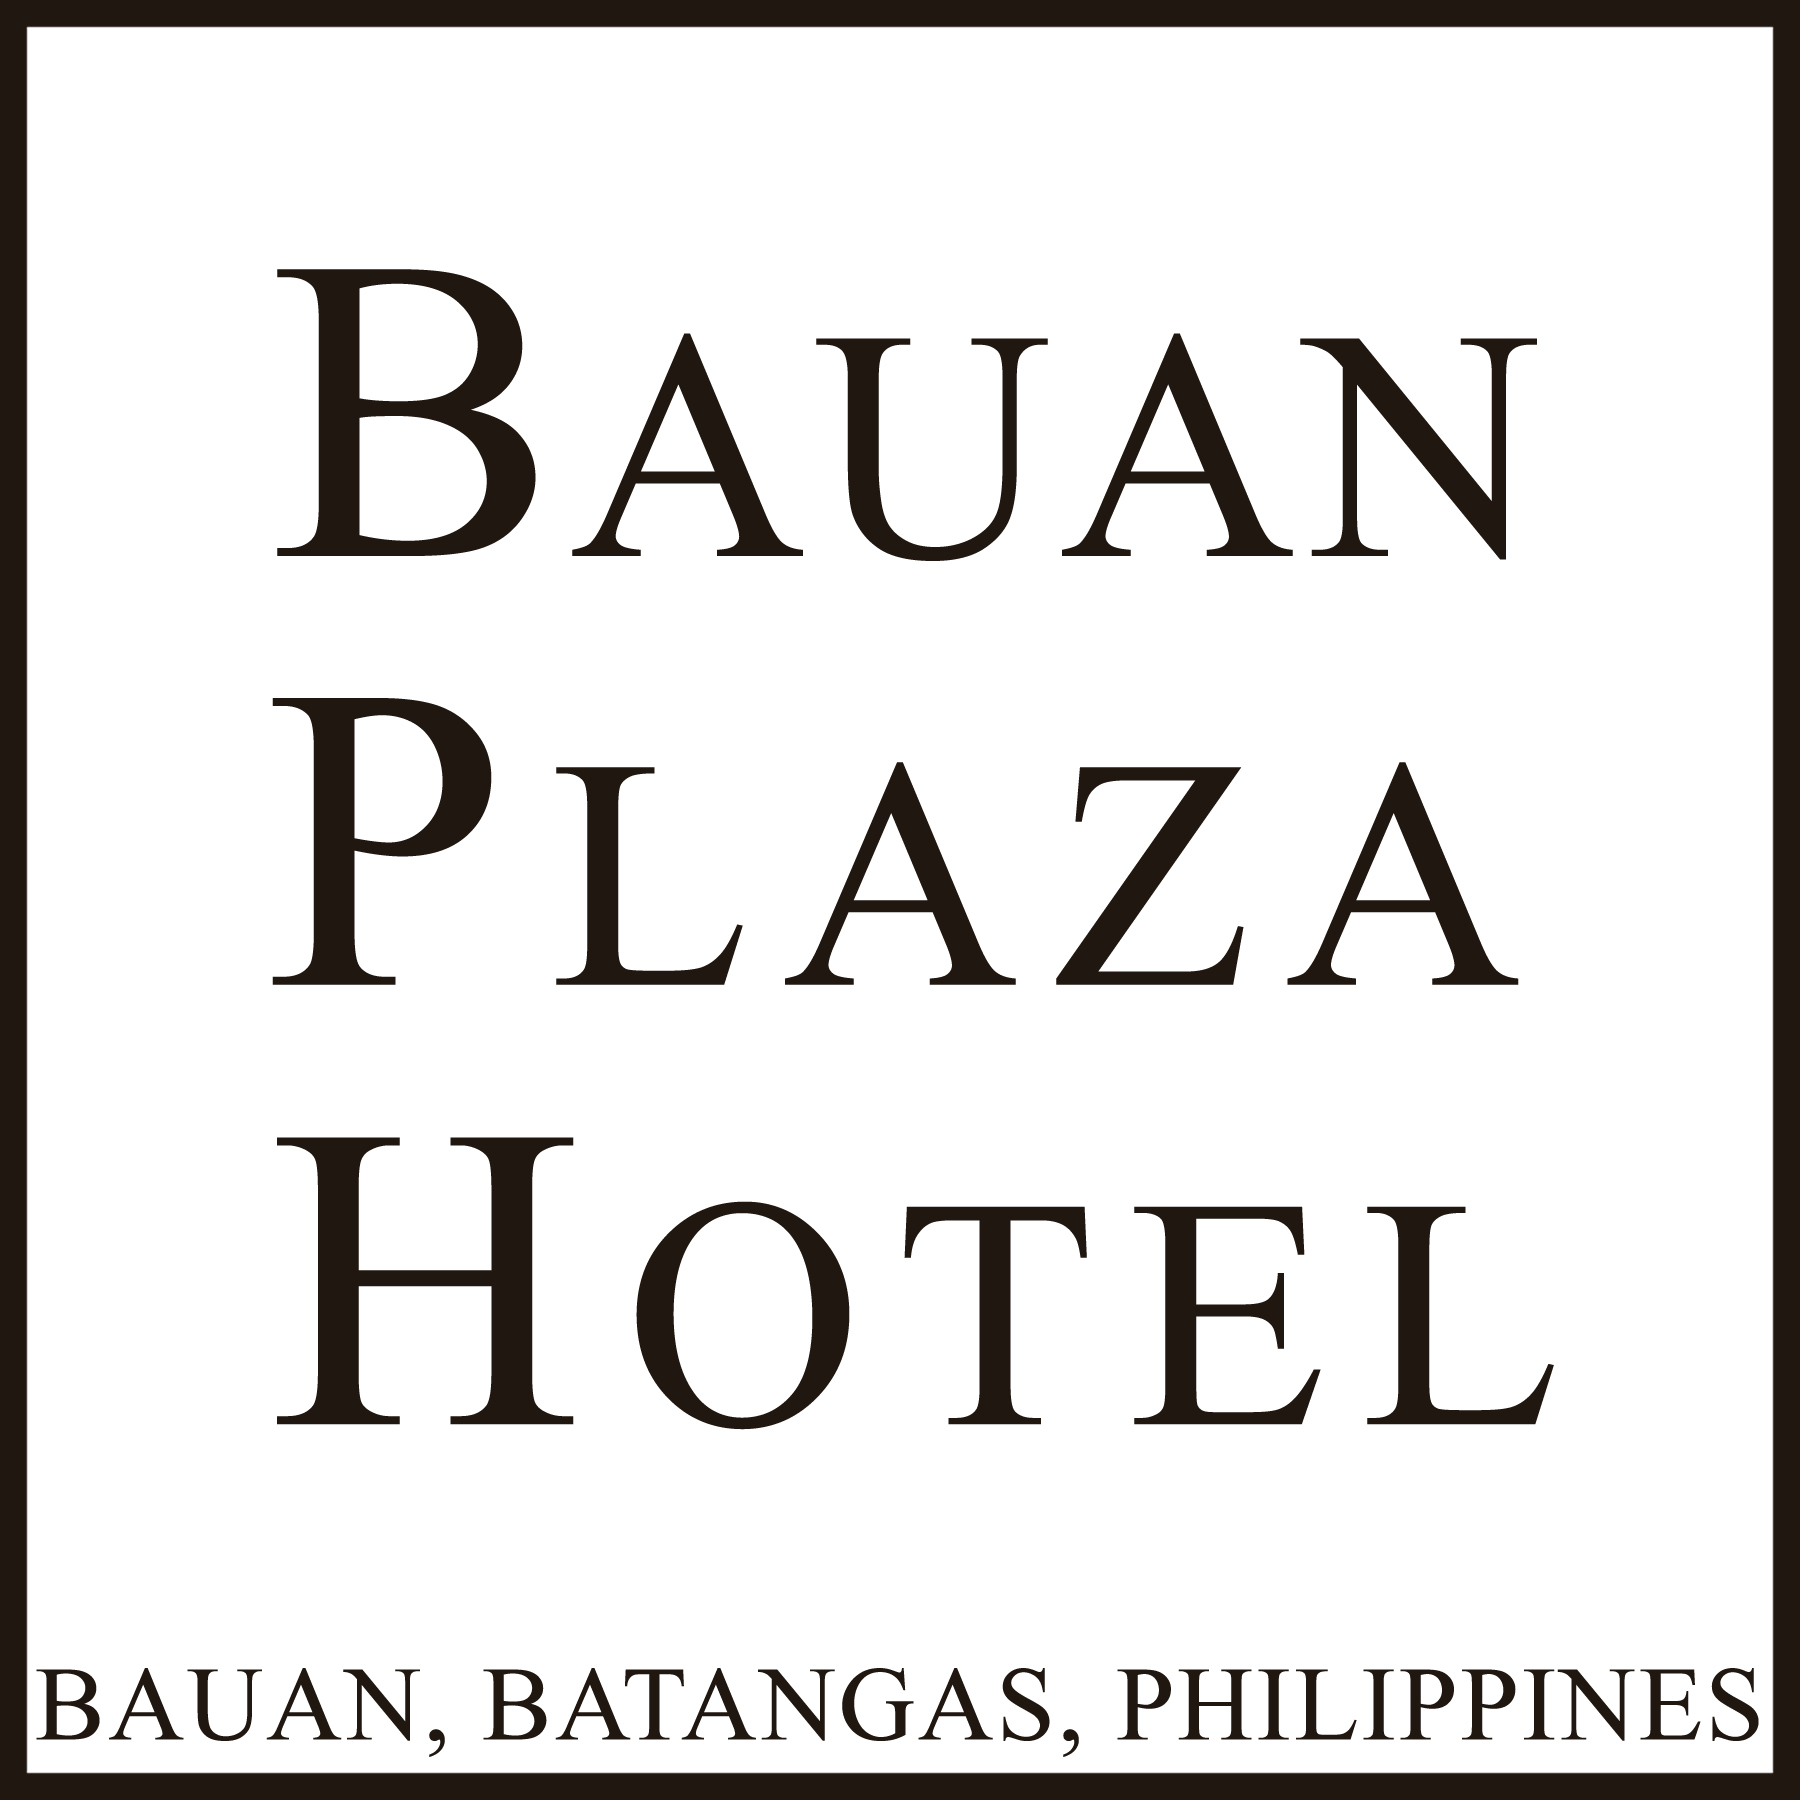 The Bauan Plaza Hotel